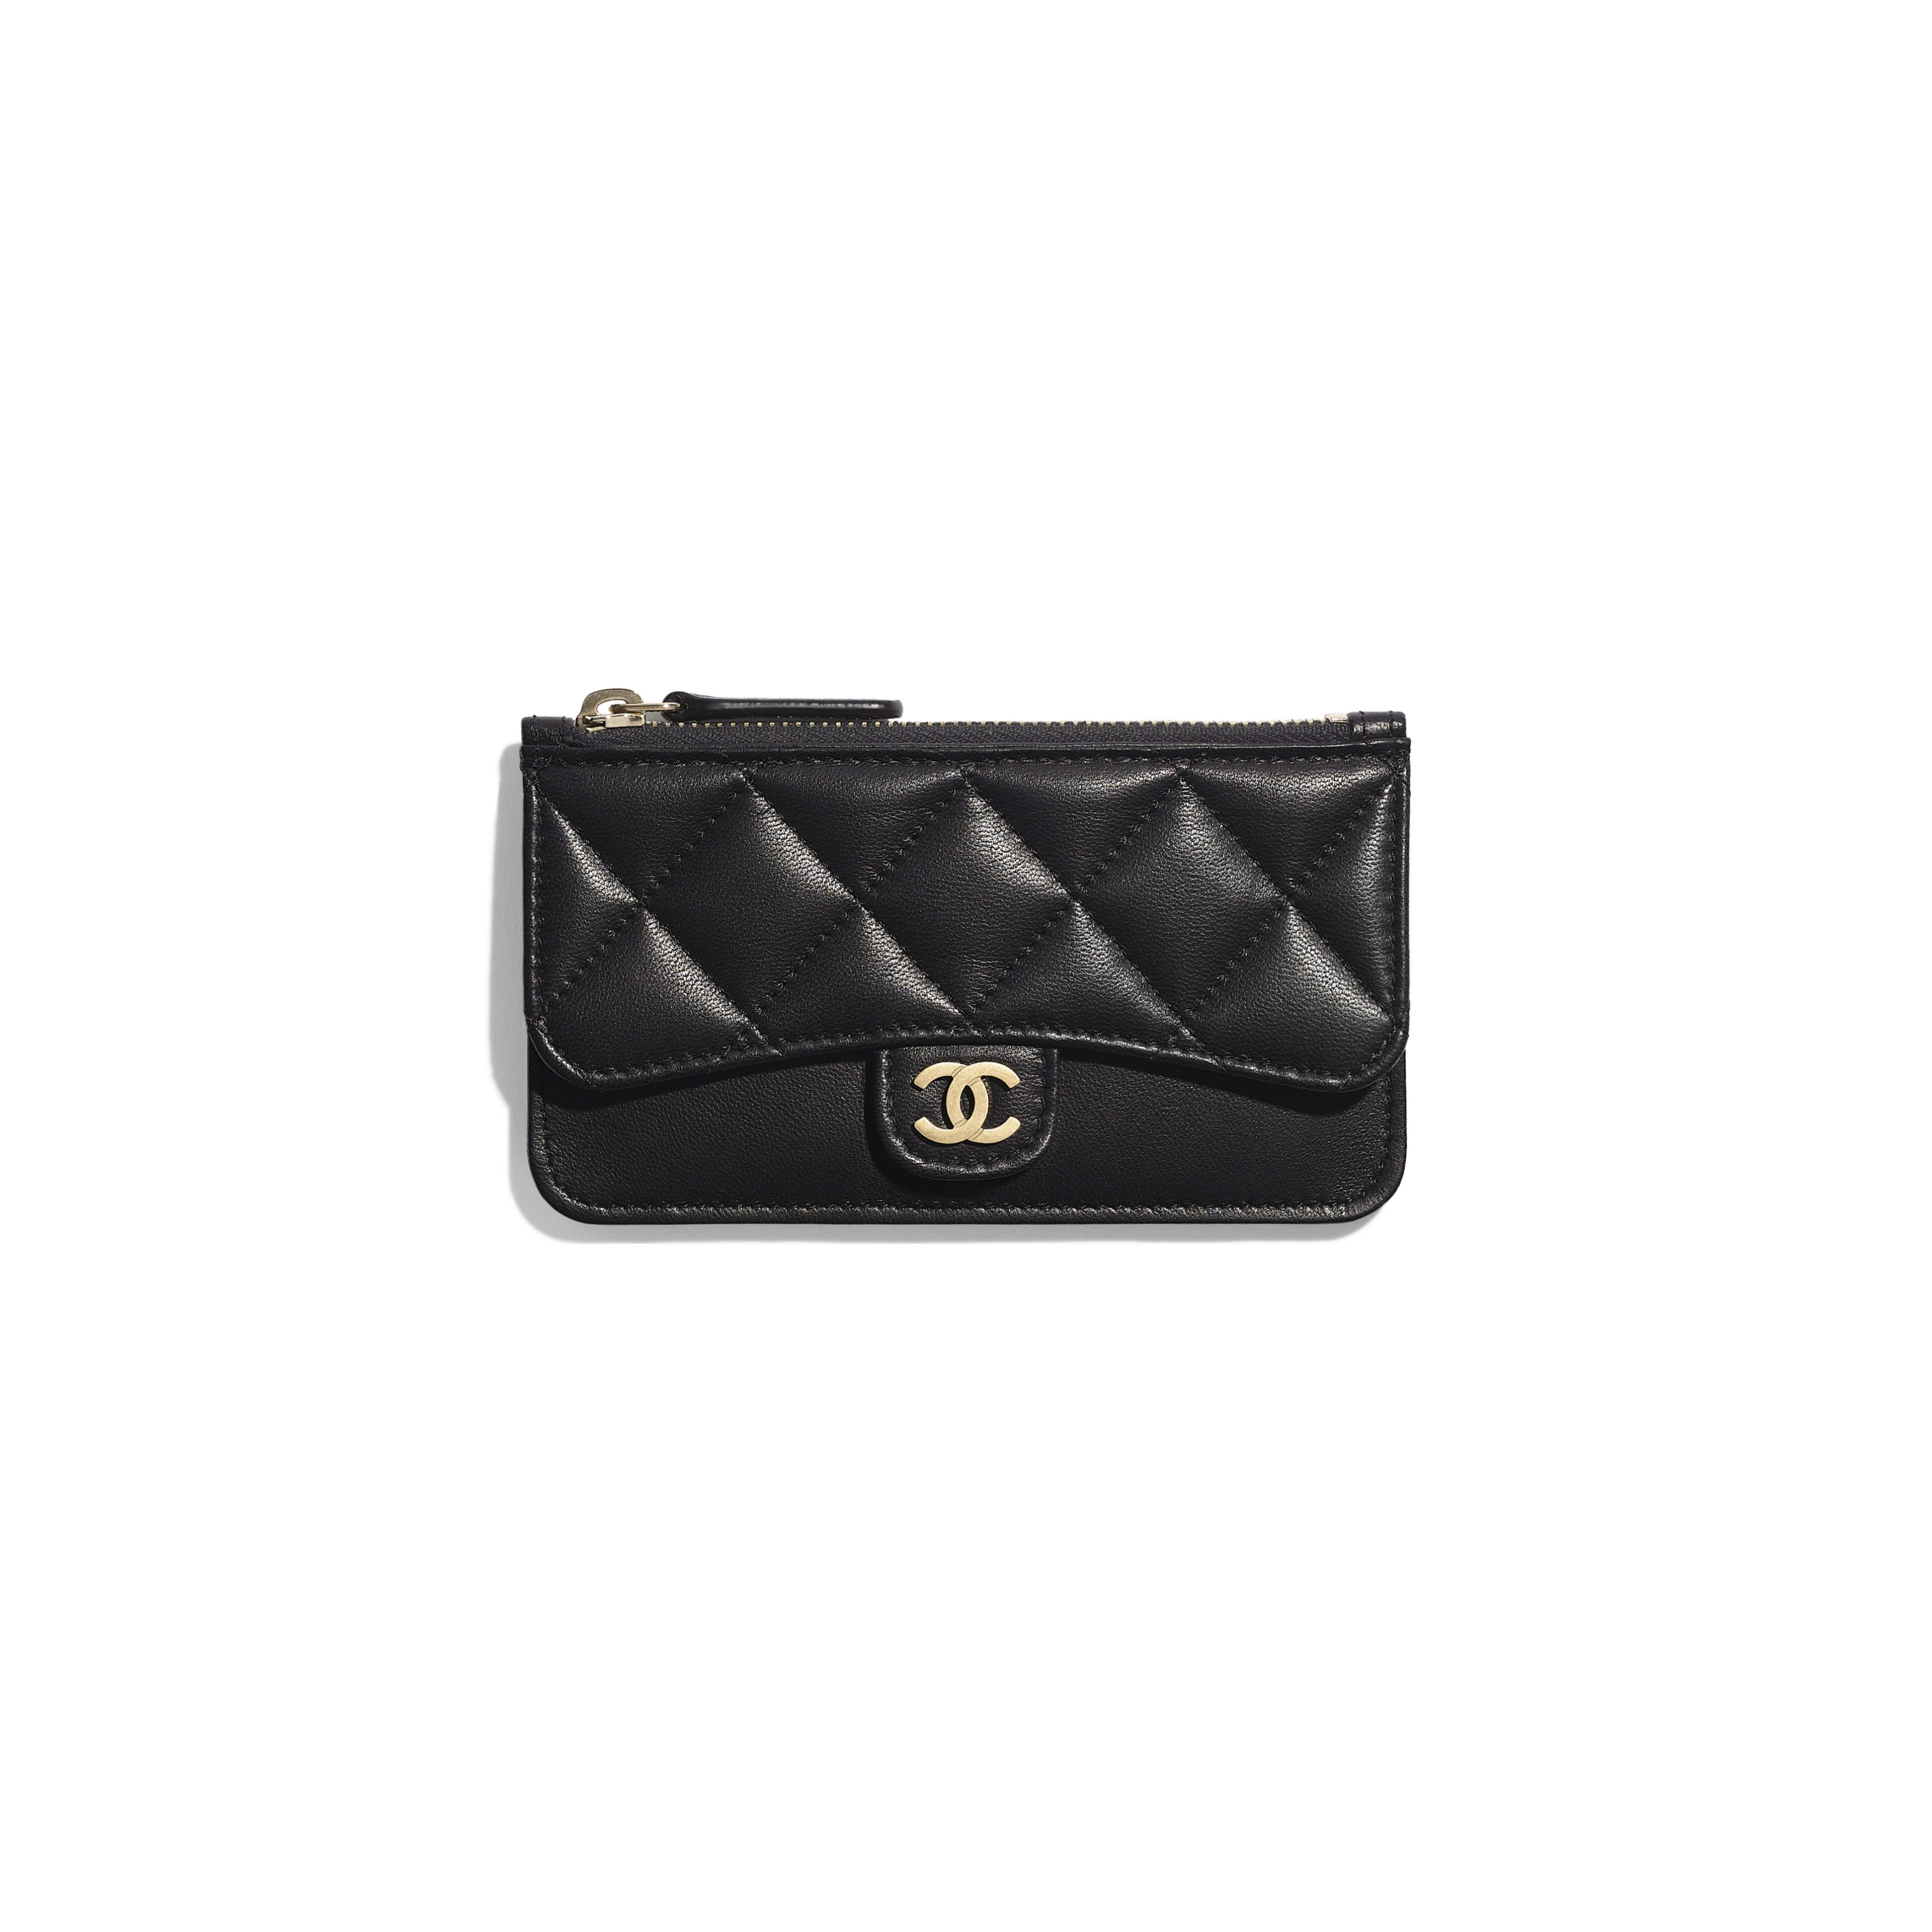 Classic Card Holder - Black - Lambskin & Gold-Tone Metal - Default view - see full sized version